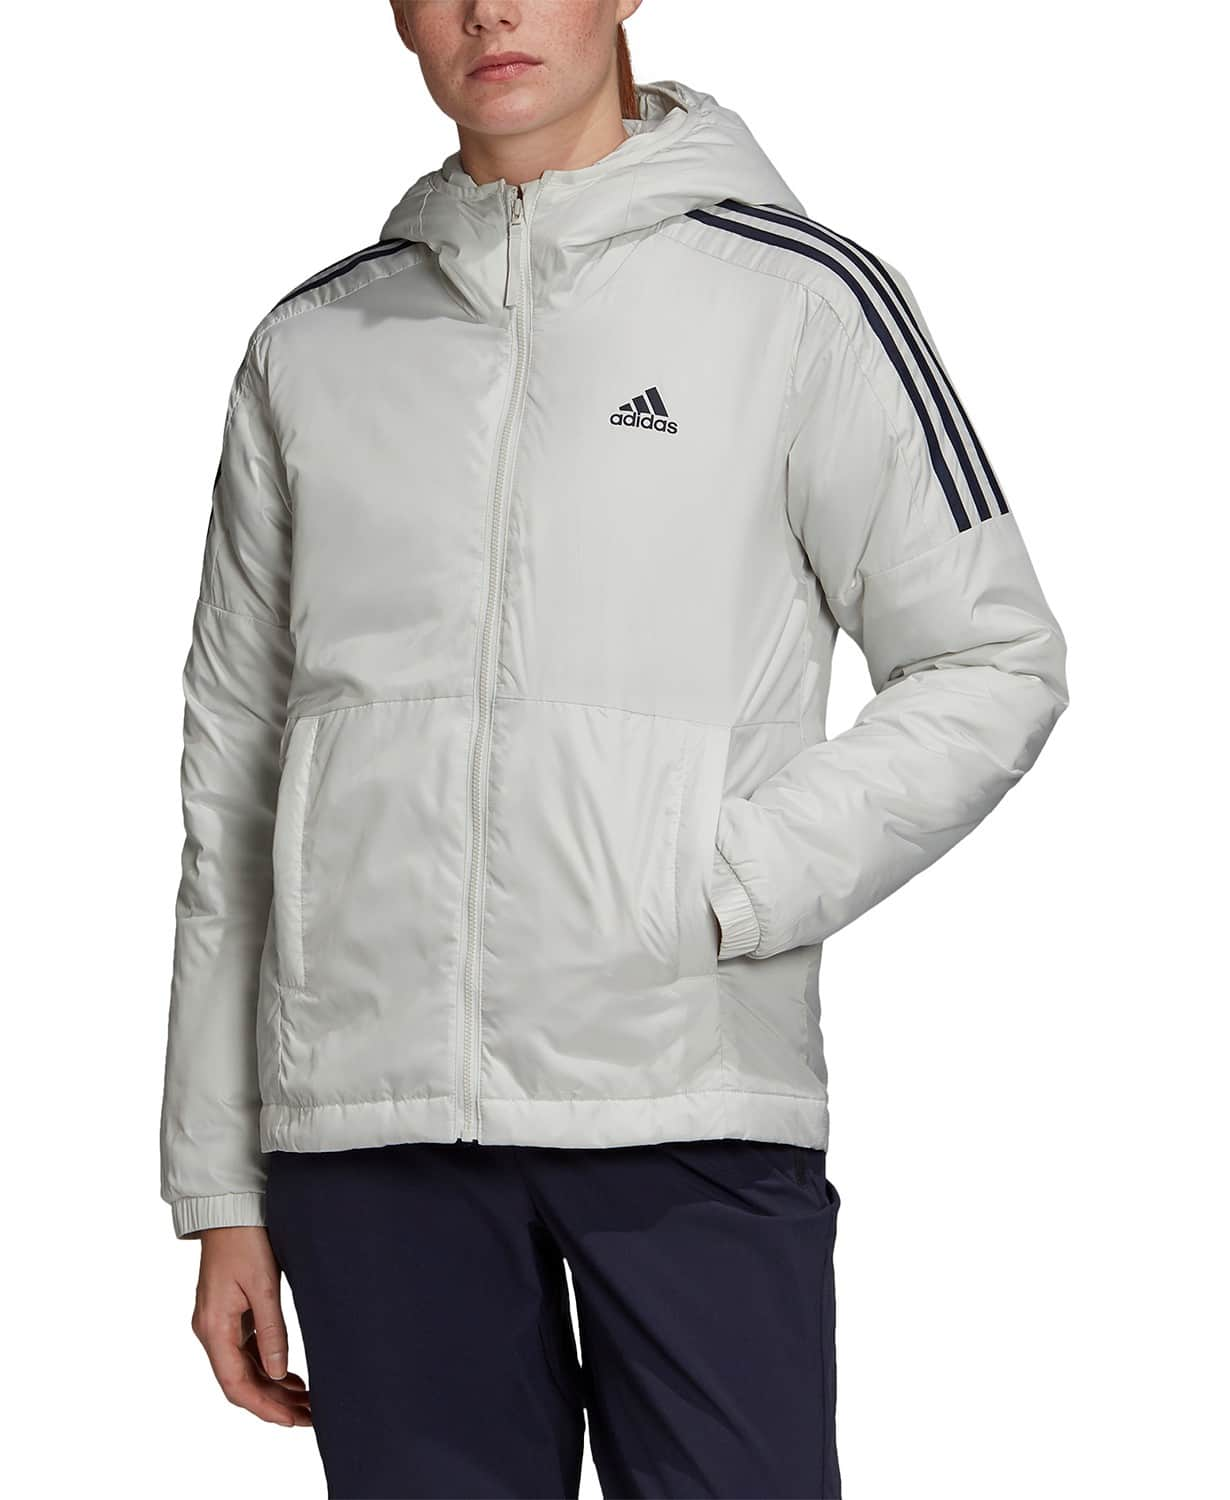 adidas Women's Essentials Insulated Hooded Jacket $40, adidas Women's Back to Sport Insulated Hooded Jacket $40, More + free shipping